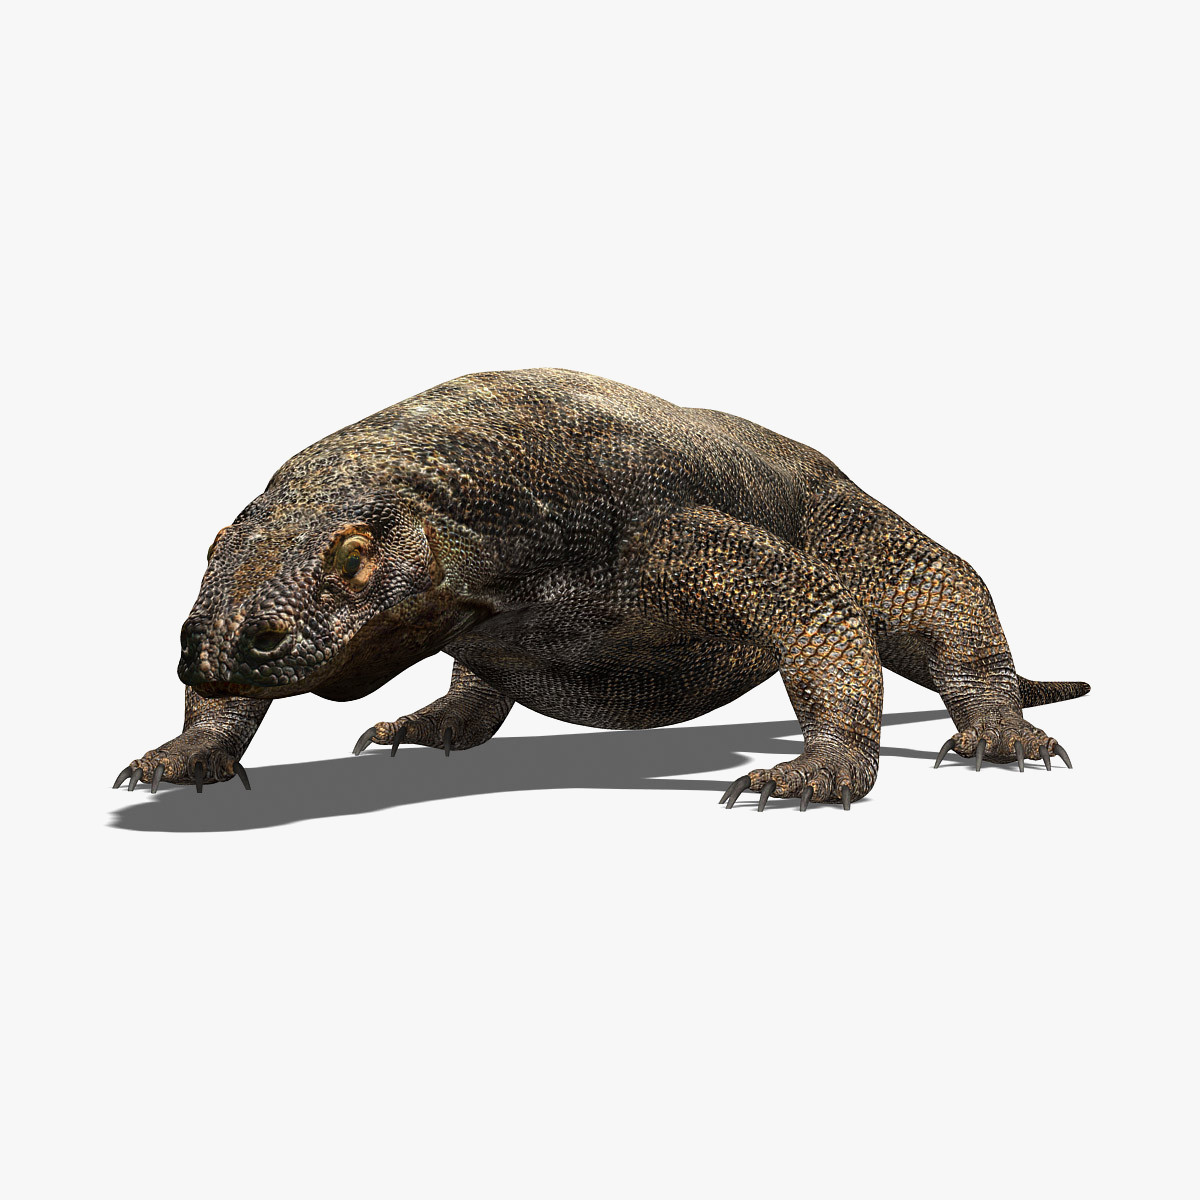 photorealistic komodo dragon 3d model